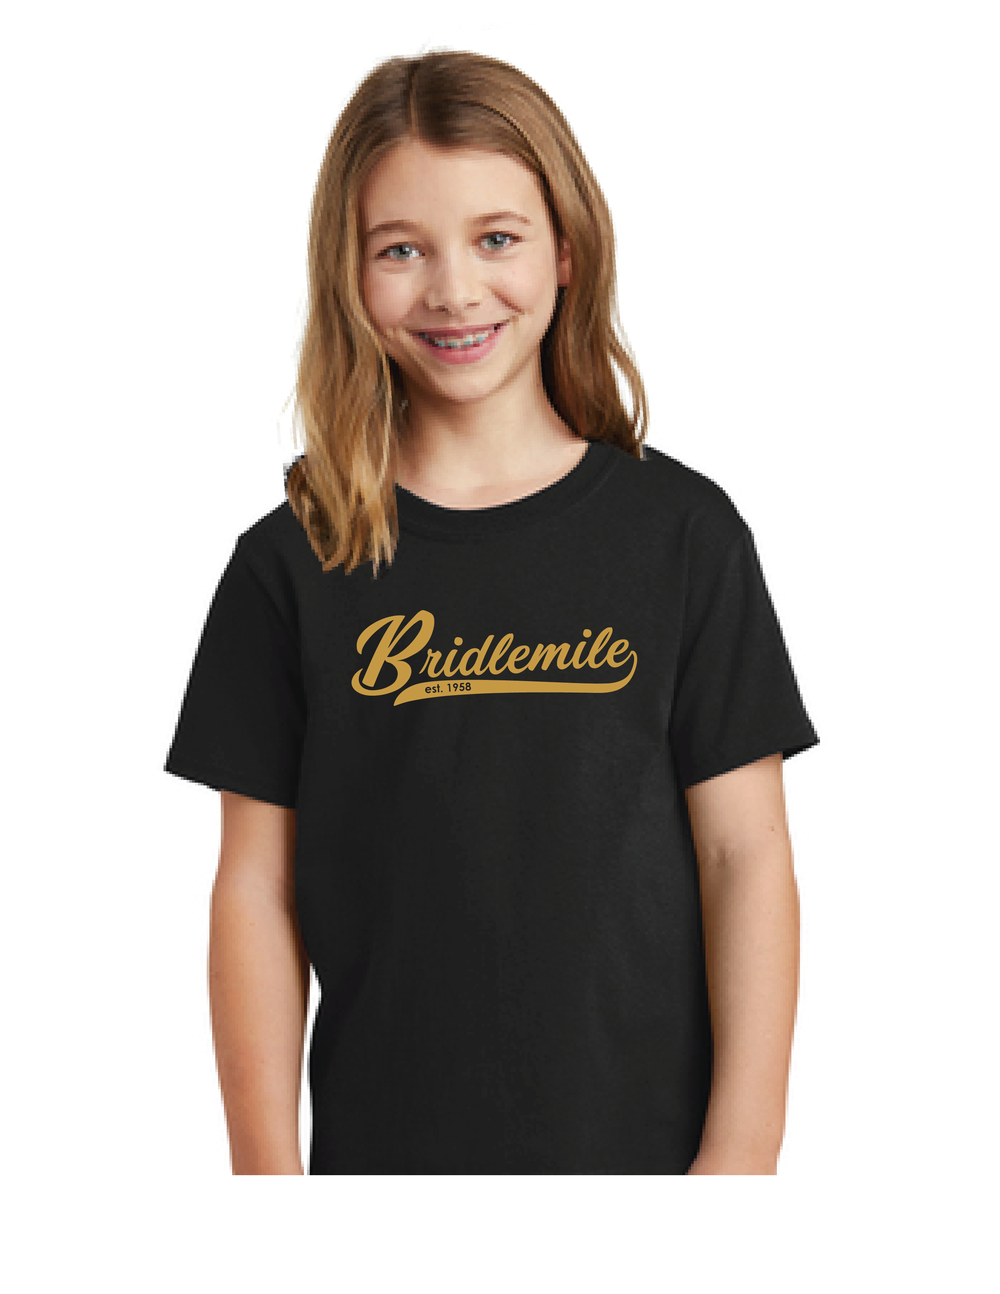 Bridlemile 60th Anniversary Designs_60th Tee Youth.png